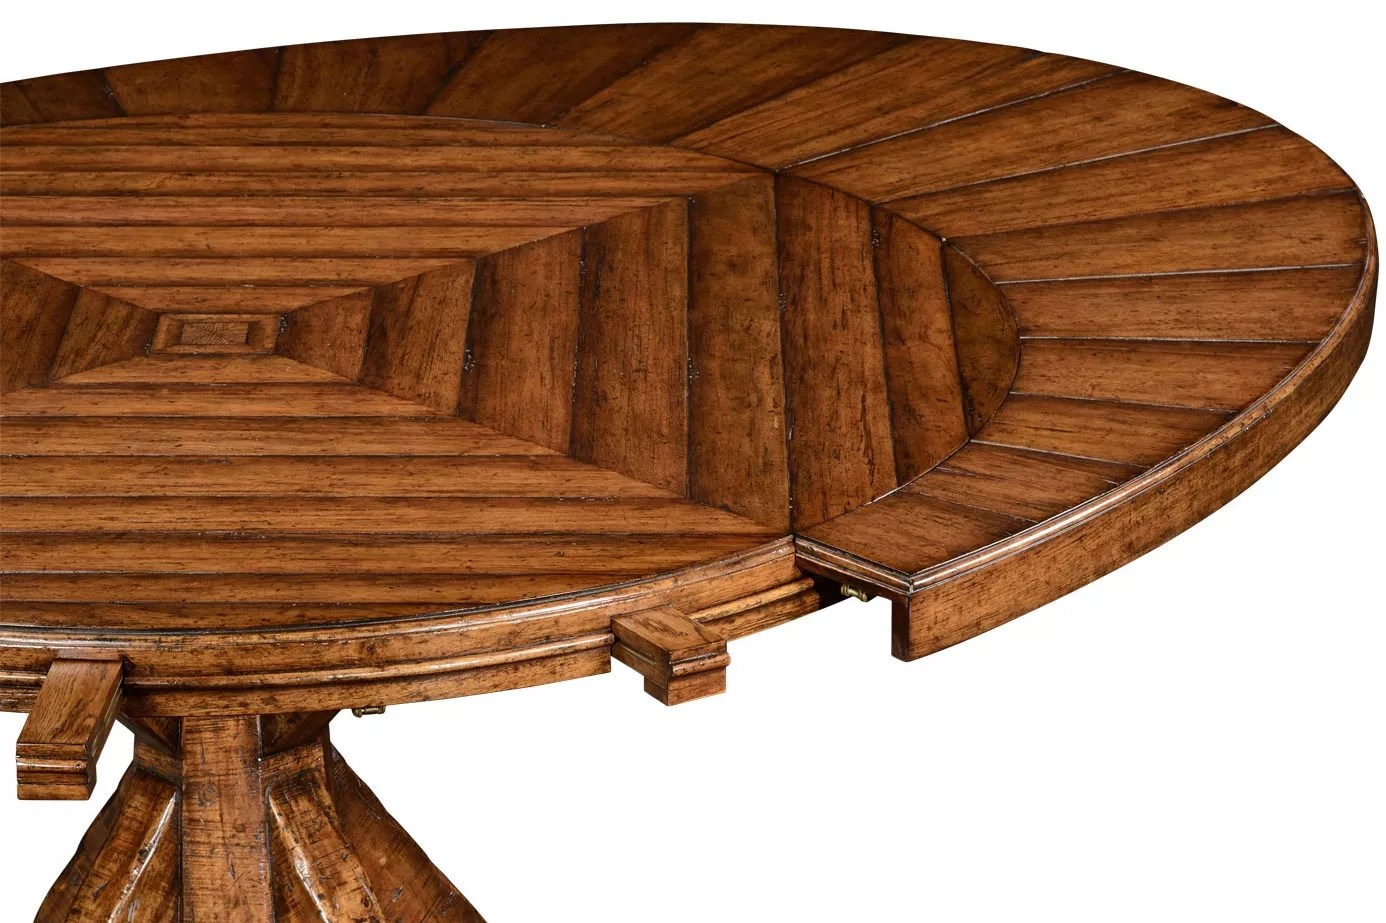 Oval Distressed Wood Dining Tables